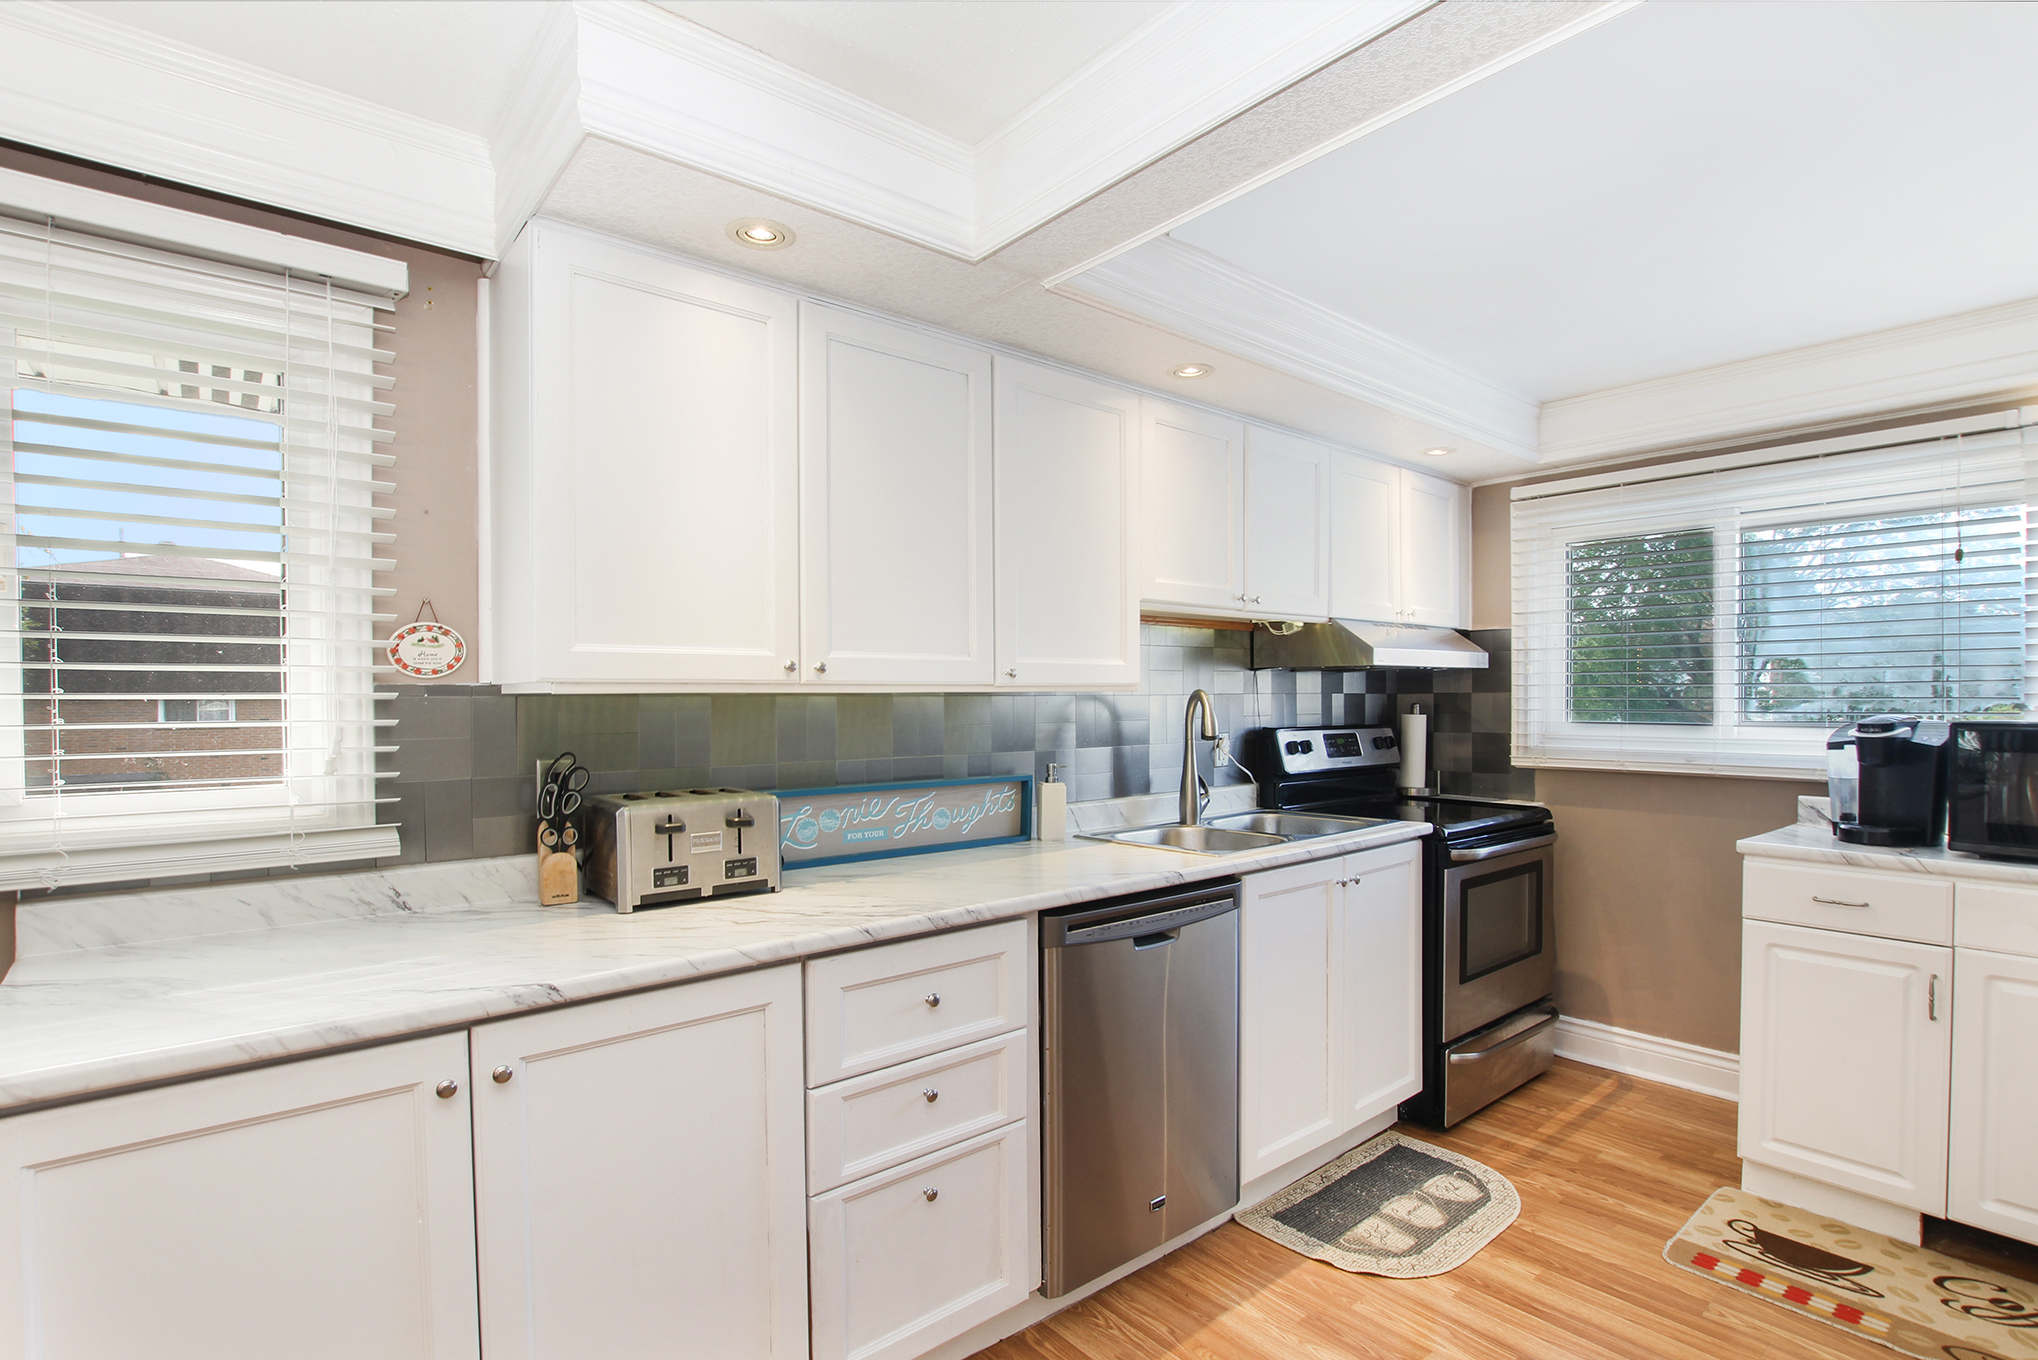 Spacious kitchen with stainless steel backsplash, stainless steel appliances, laundry area, loads of cabinet and counter space, great sized dining area overlooking living room.